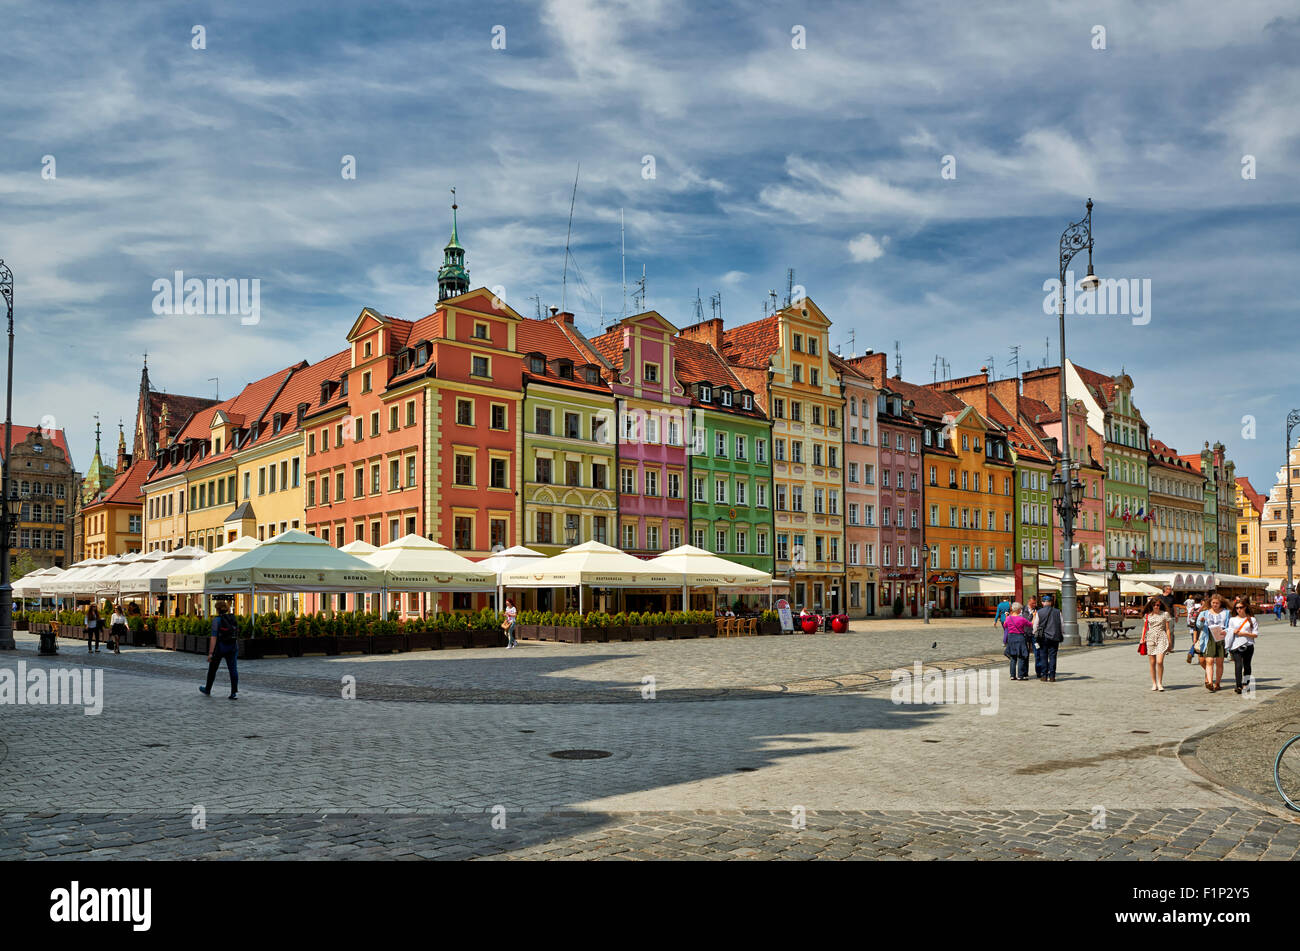 Market Square or Ryneck of Wroclaw, Lower Silesia, Poland, Europe Stock Photo